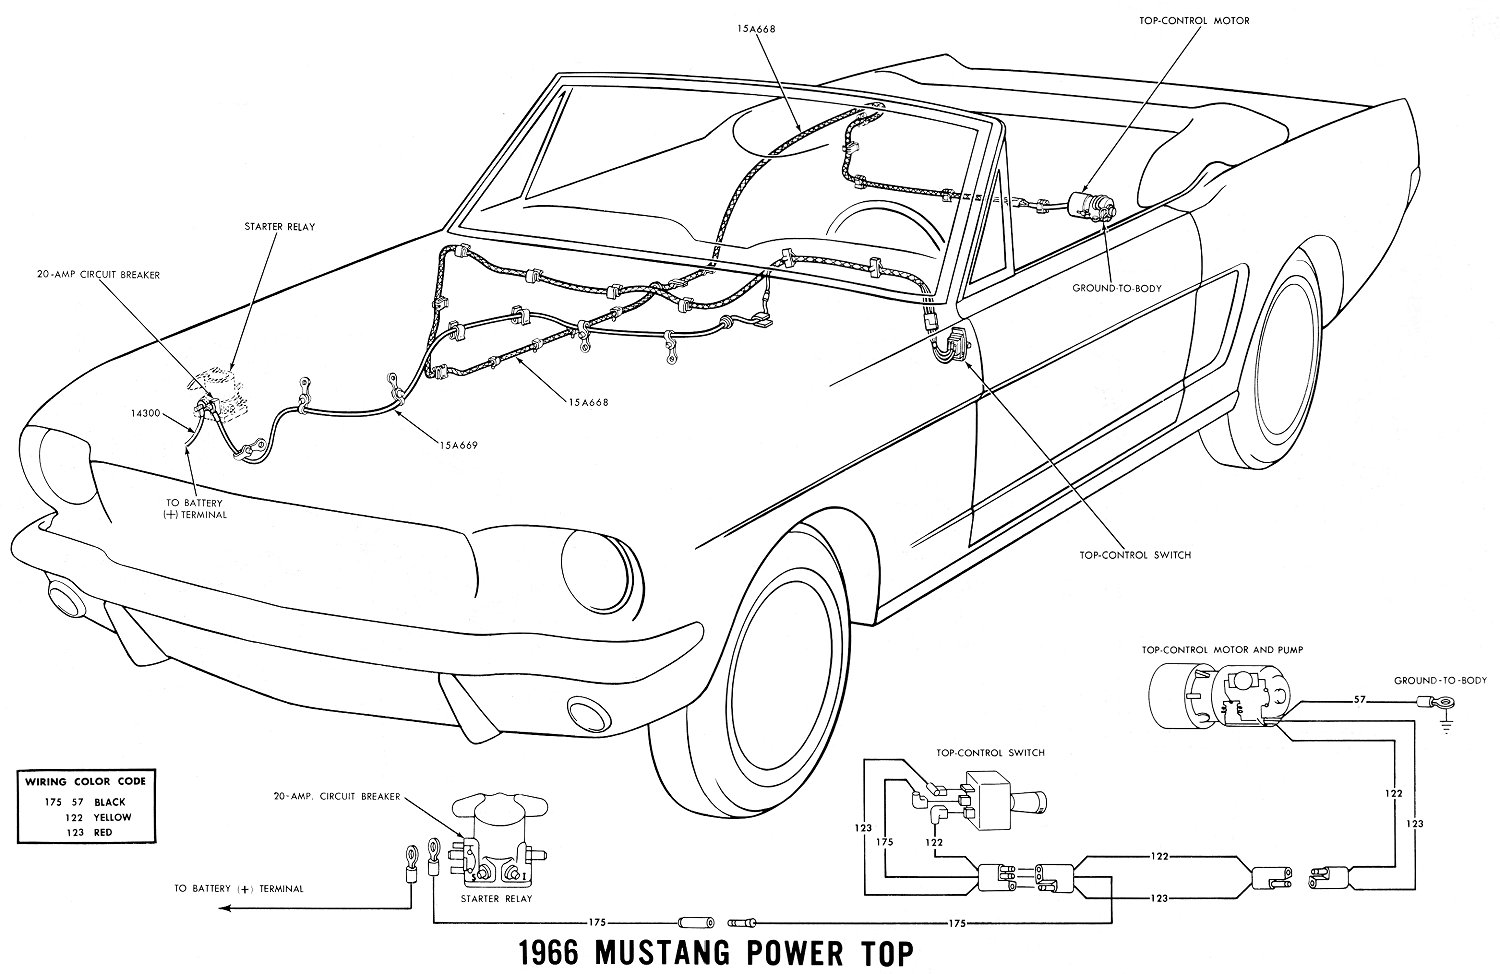 ... 66 accessories schematic · 66 stereo/tape player details · 66 power  convertible top details